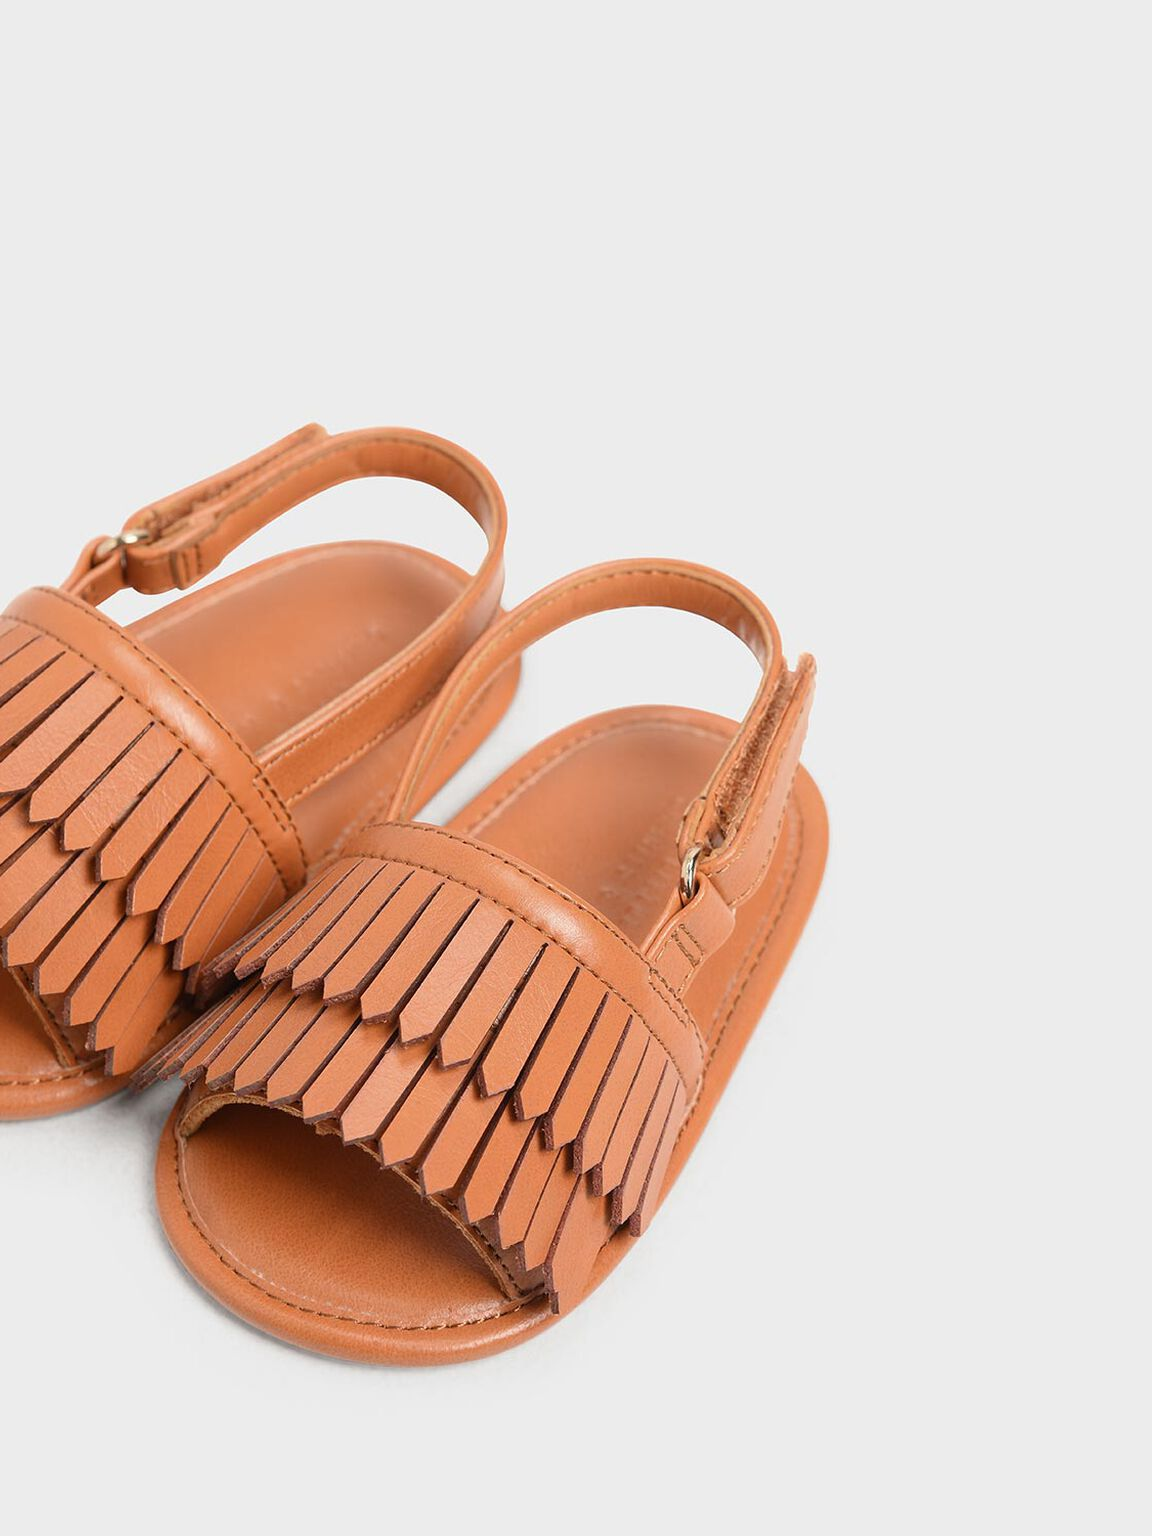 Kids' Fringe Slingback Flats, Orange, hi-res